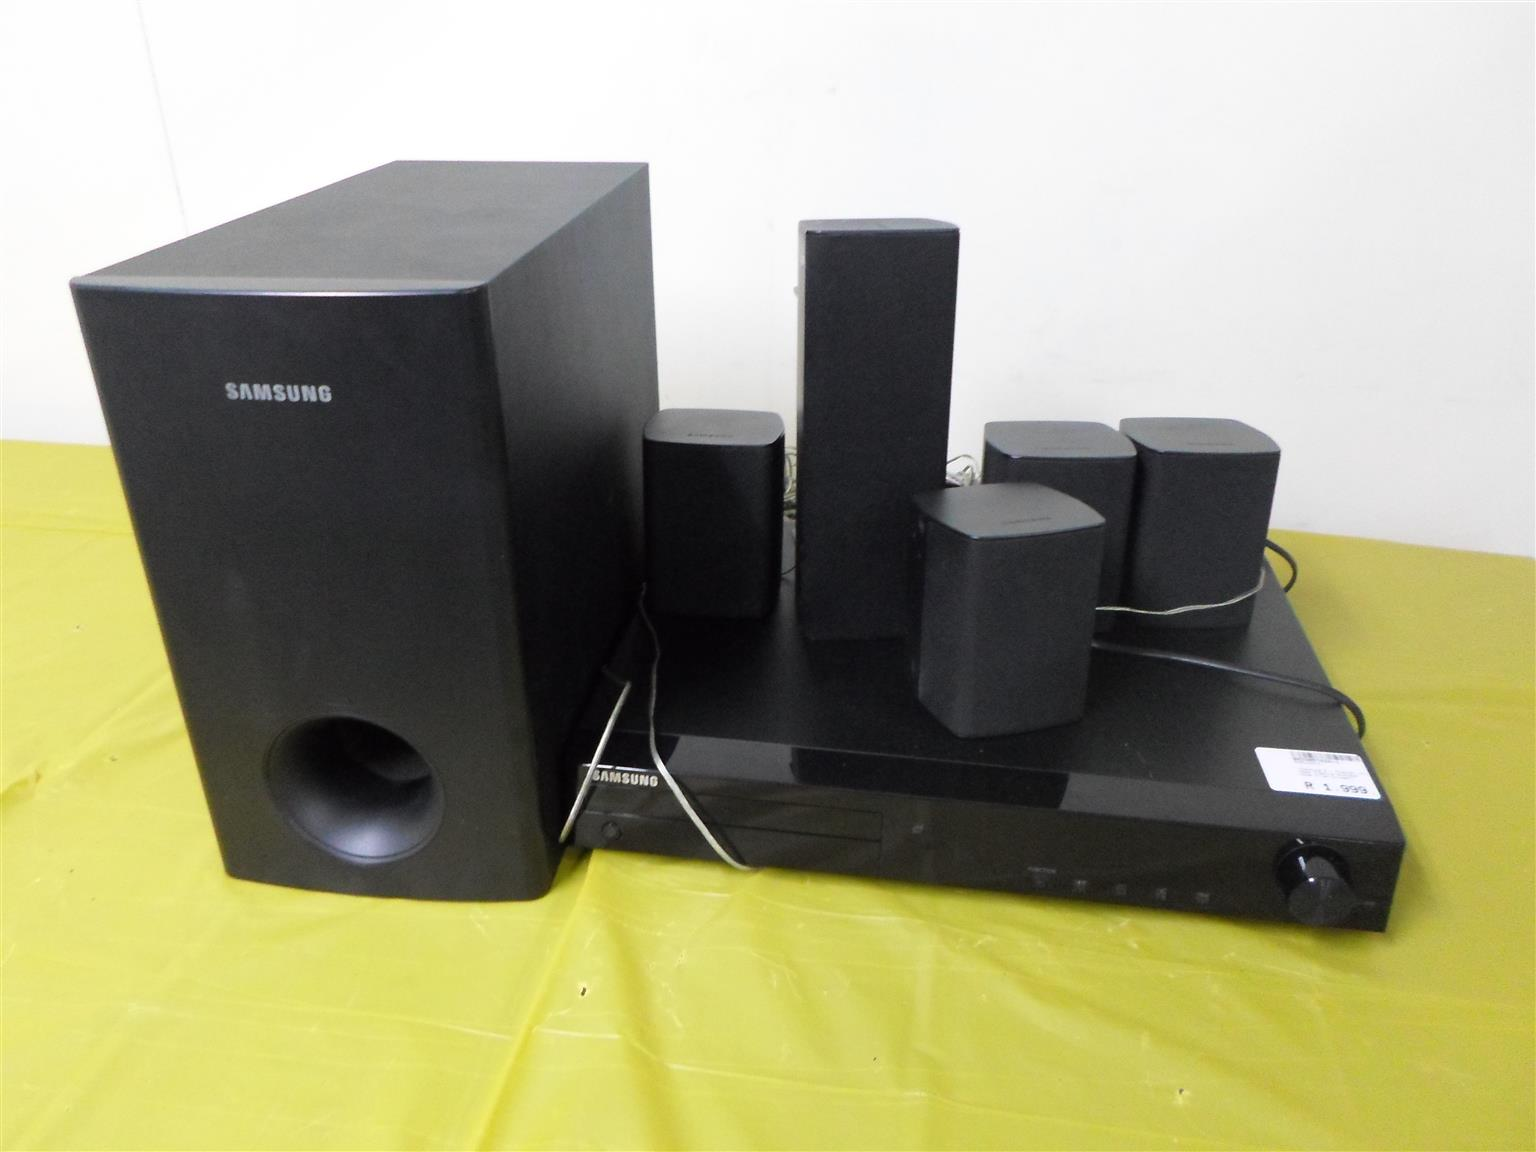 5.1Ch Samsung Home Theater System